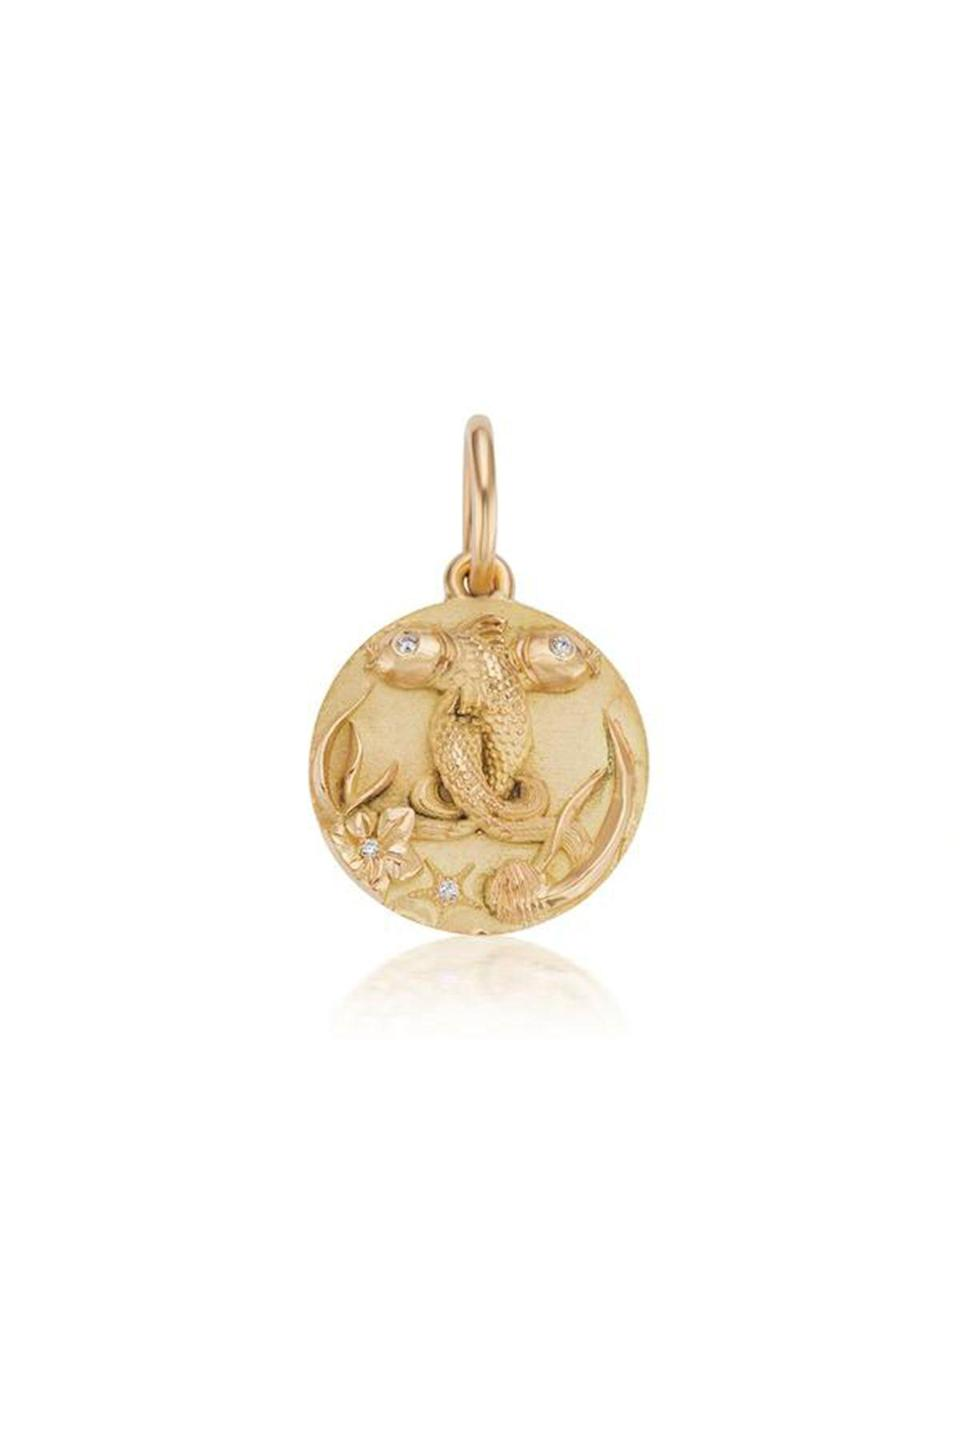 """<p><strong>Briony Raymond</strong></p><p>brionyraymond.com</p><p><strong>$2800.00</strong></p><p><a href=""""https://brionyraymond.com/collections/zodiac/products/mini-pisces-zodiac-medallion"""" rel=""""nofollow noopener"""" target=""""_blank"""" data-ylk=""""slk:Shop Now"""" class=""""link rapid-noclick-resp"""">Shop Now</a></p><p>In addition to specializing in the acquisition of estate jewelry and in bespoke commisions, Briony Raymond designs for her own namesake line of chic, understated classics, like this customizable zodiac pendant.</p>"""